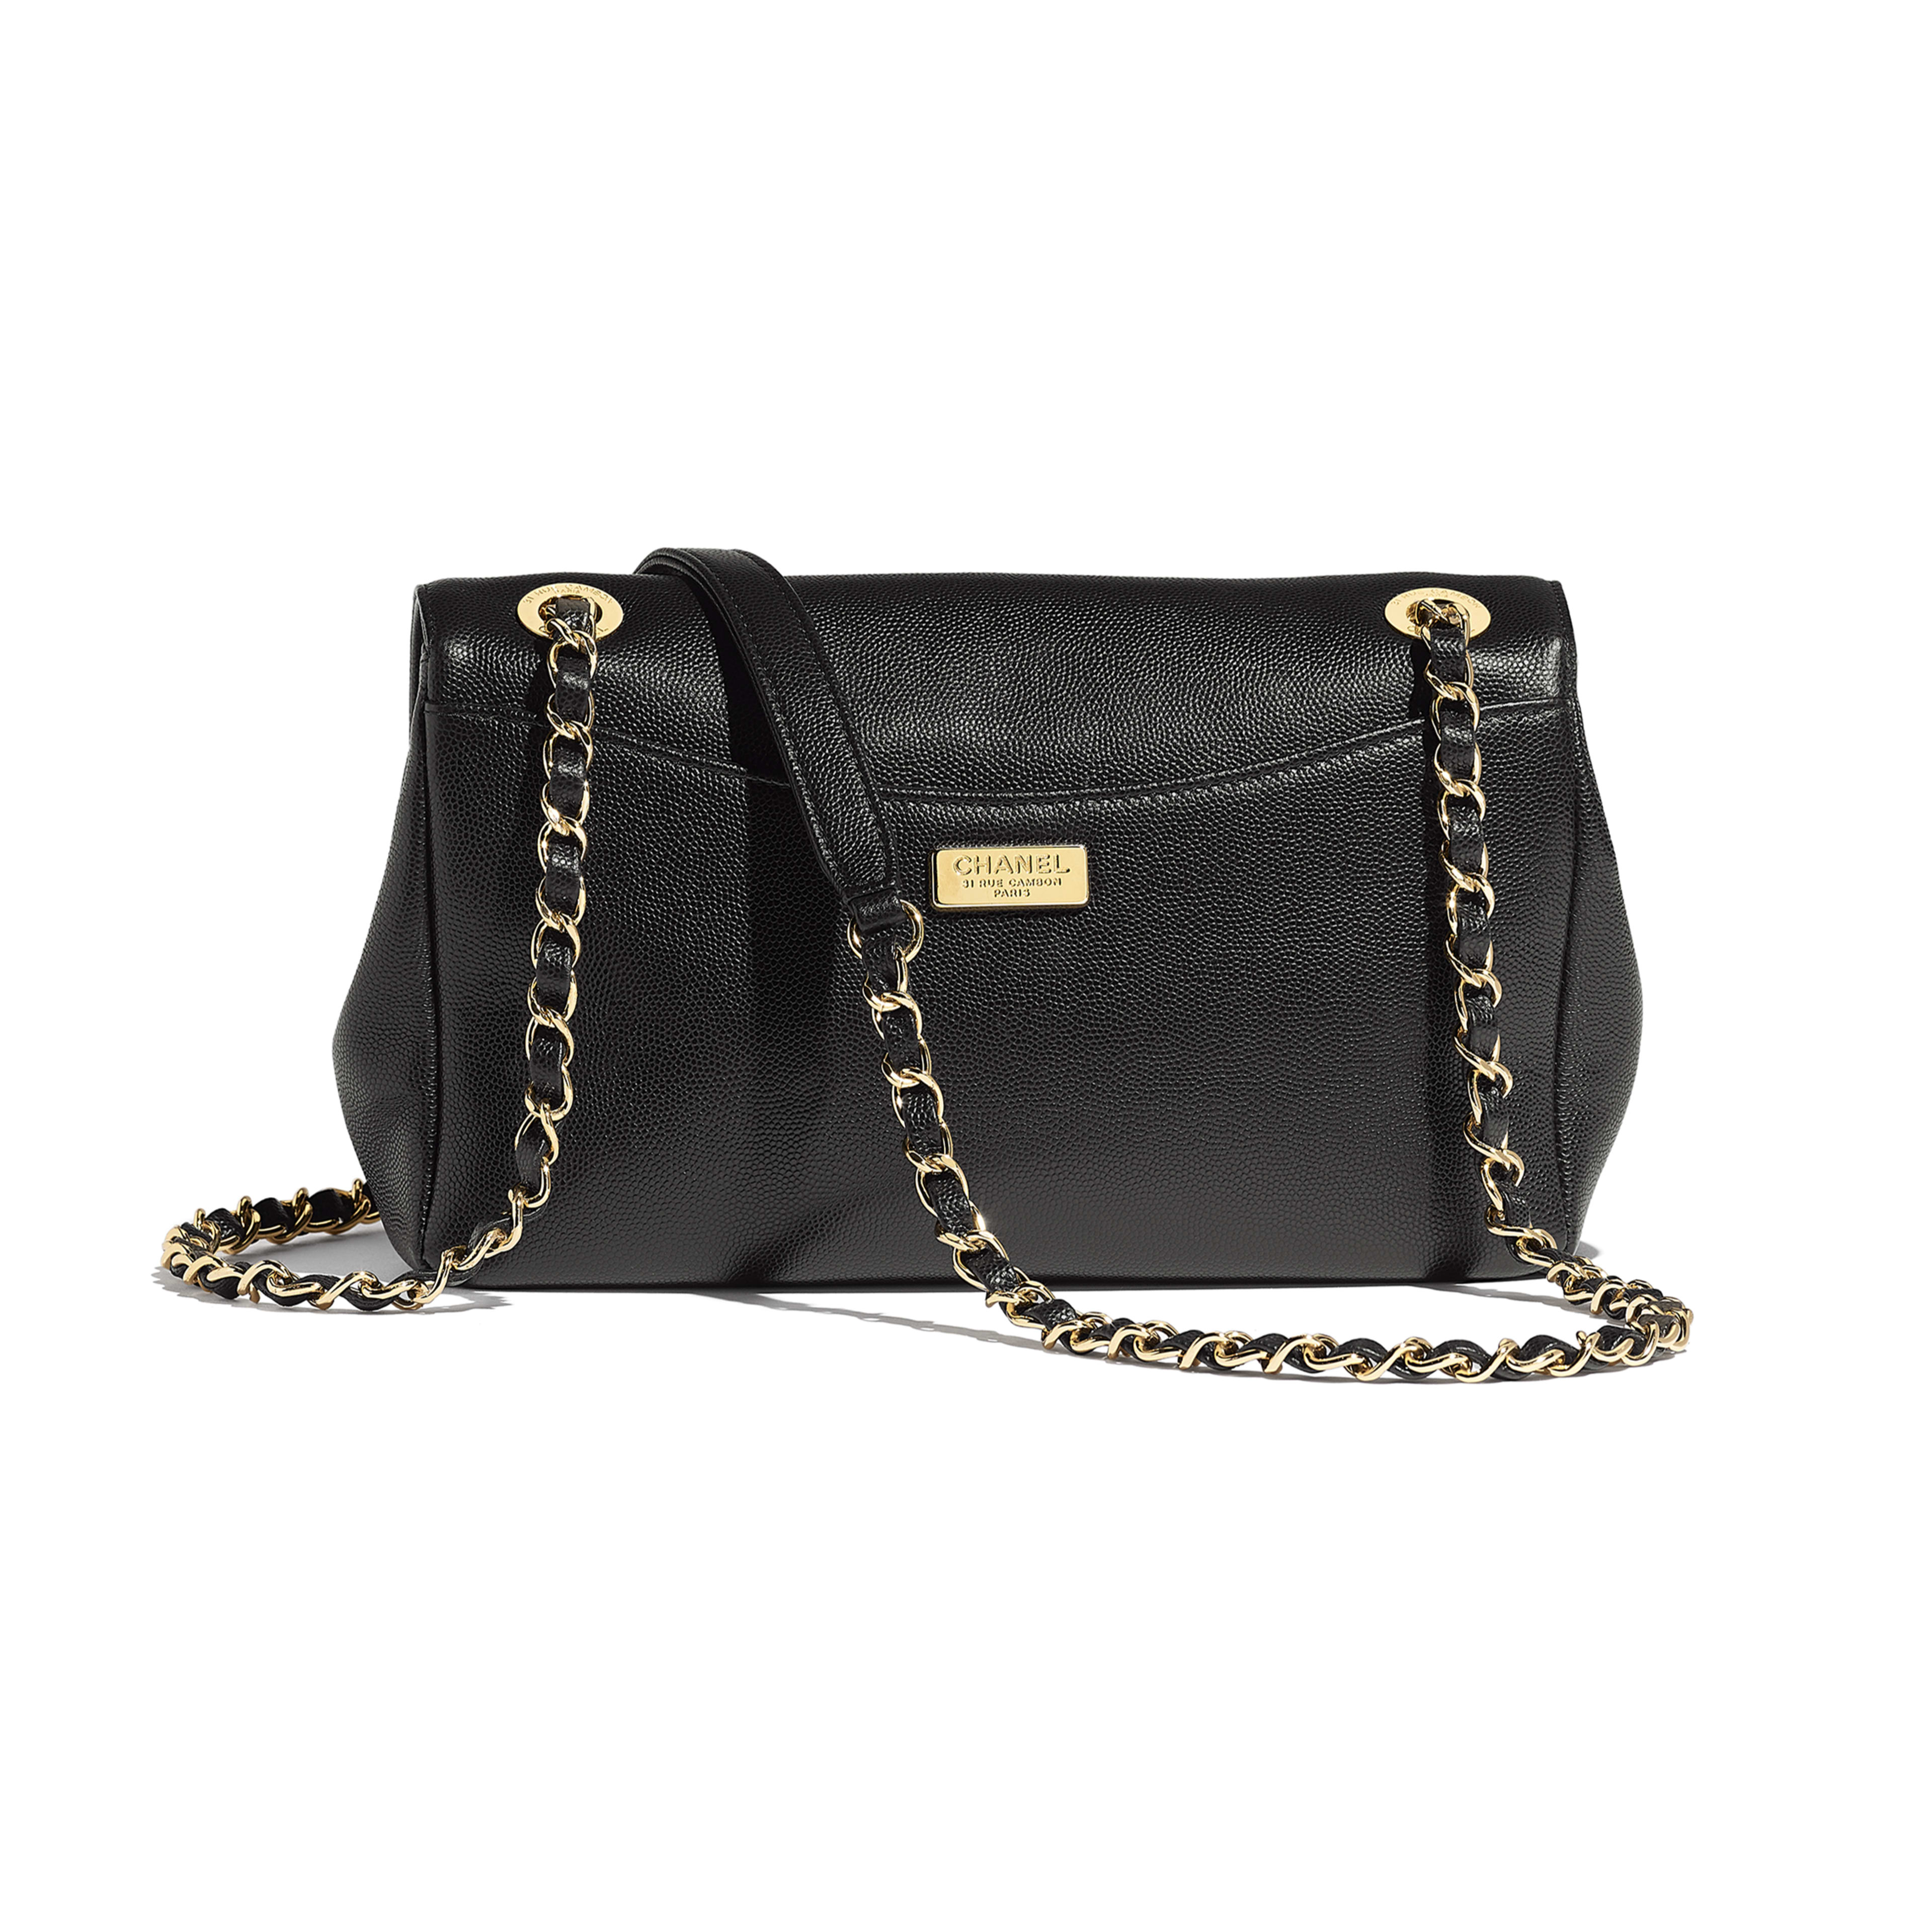 Flap Bag - Black - Embroidered Grained Calfskin & Gold-Tone Metal - Alternative view - see full sized version